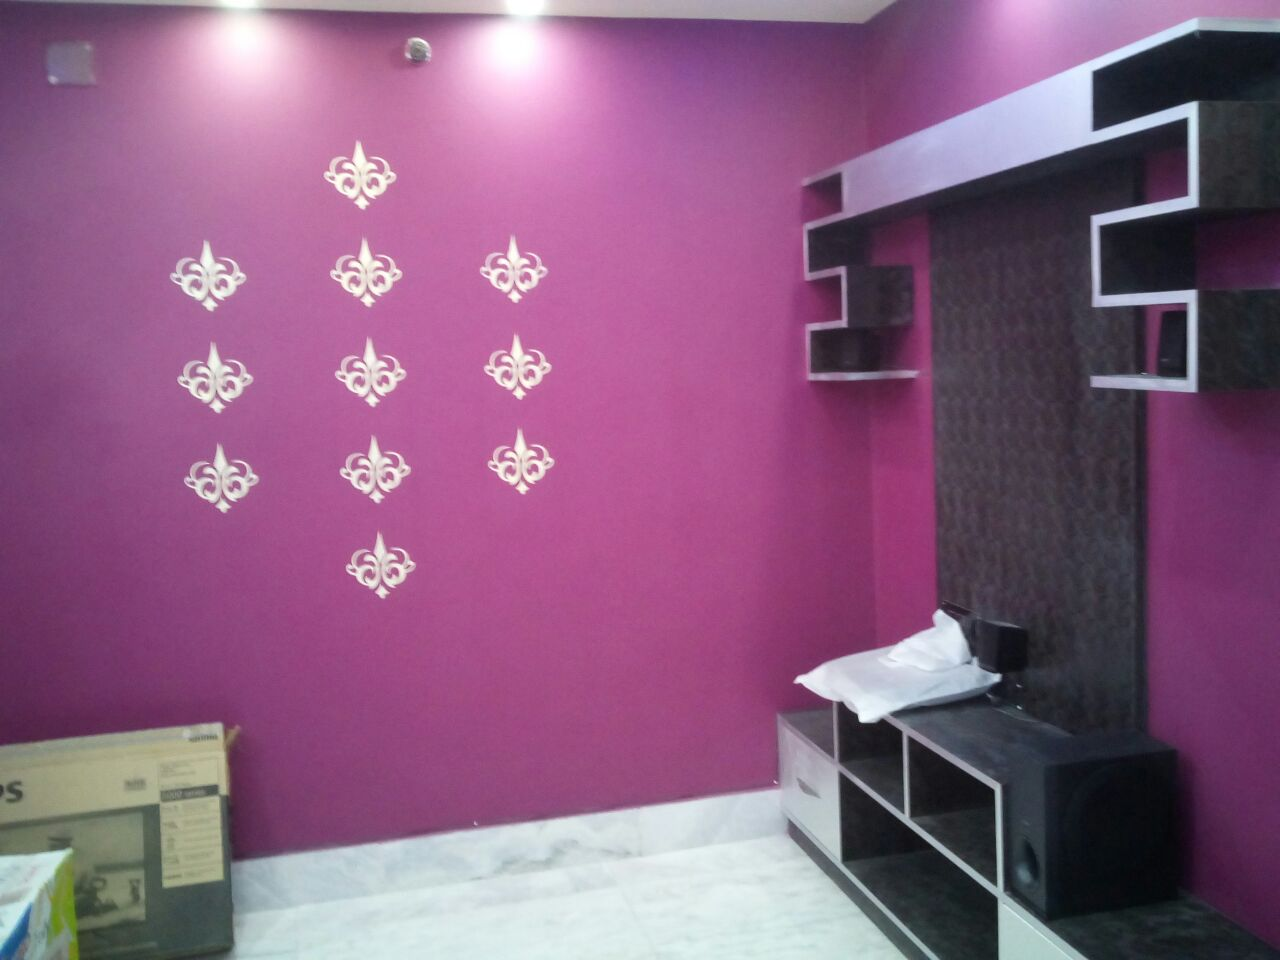 The Purple Roomq by Manik Chowdhury Living-room Contemporary | Interior Design Photos & Ideas